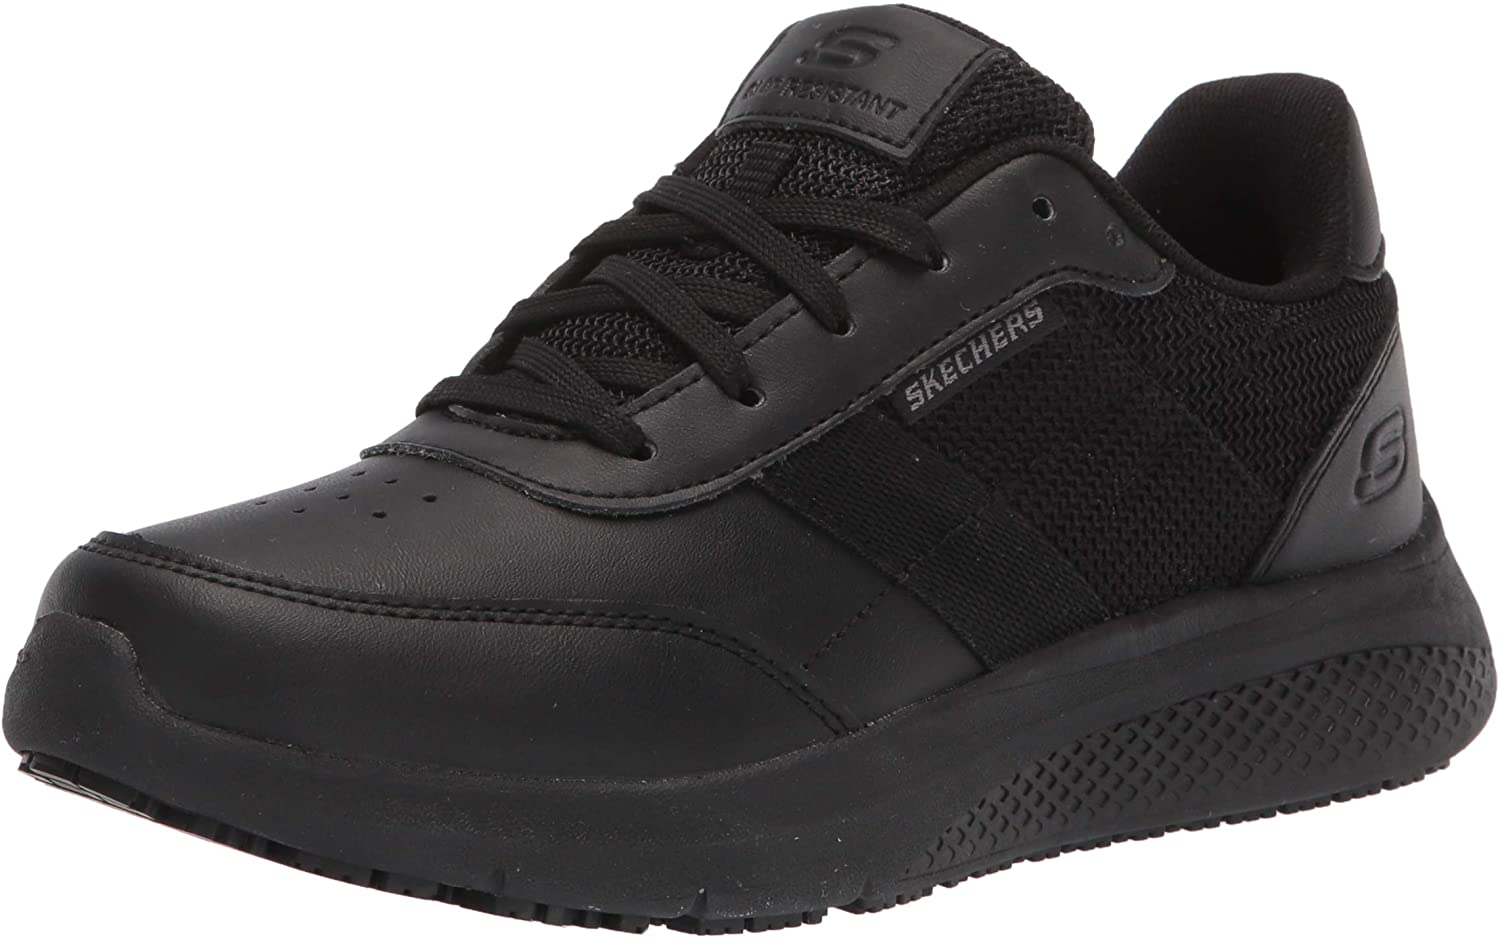 Skechers Women's Lace Up Athletic Food Service Shoe